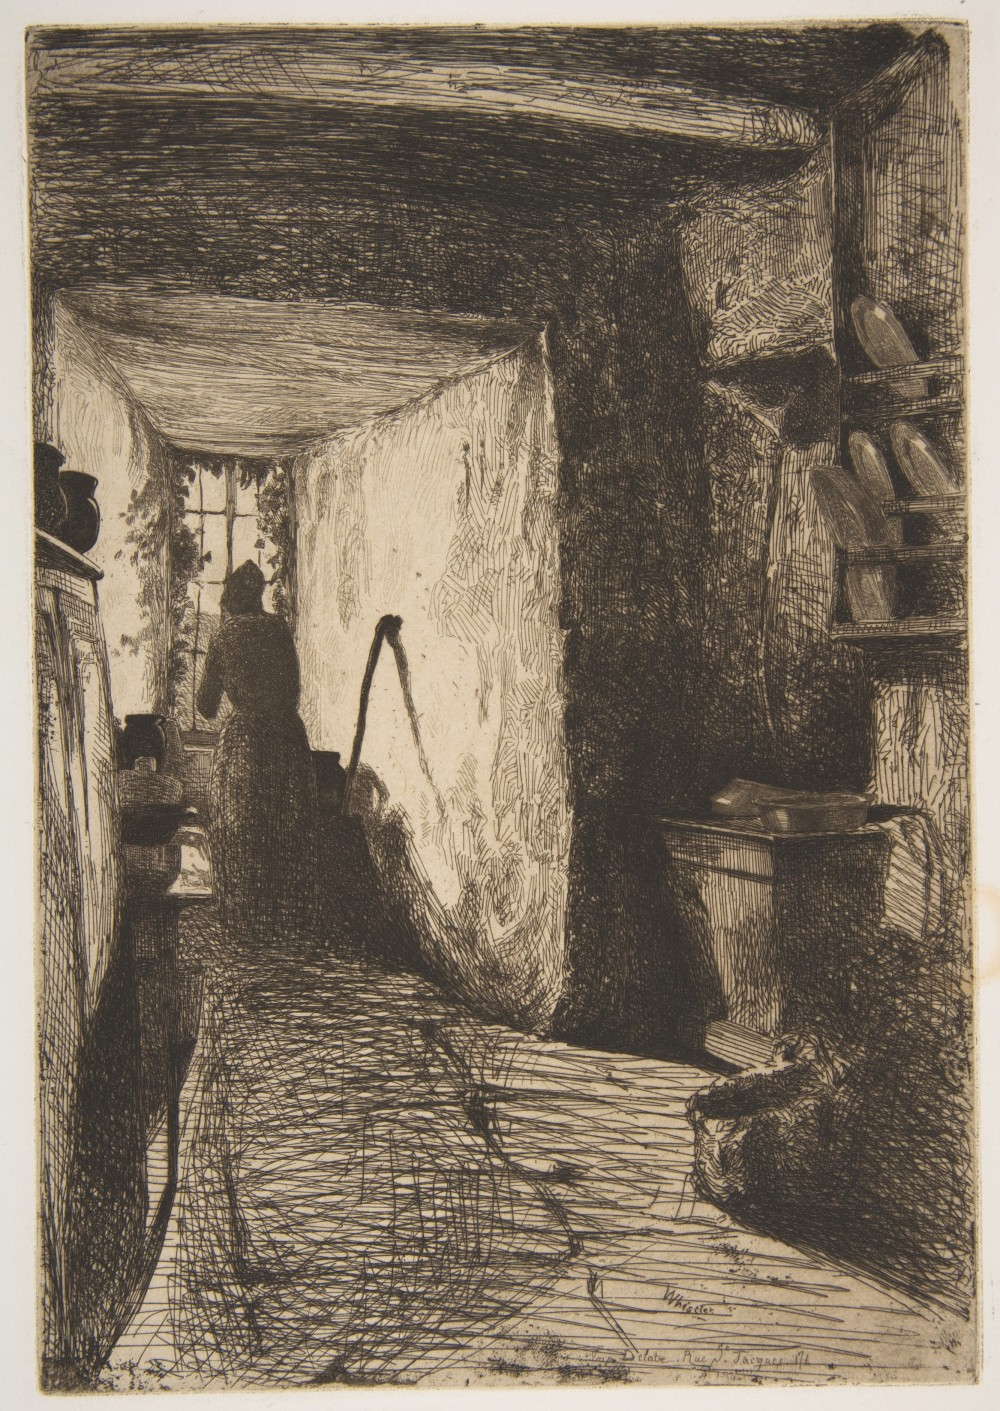 The Kitchen--James McNeill Whistler 1858